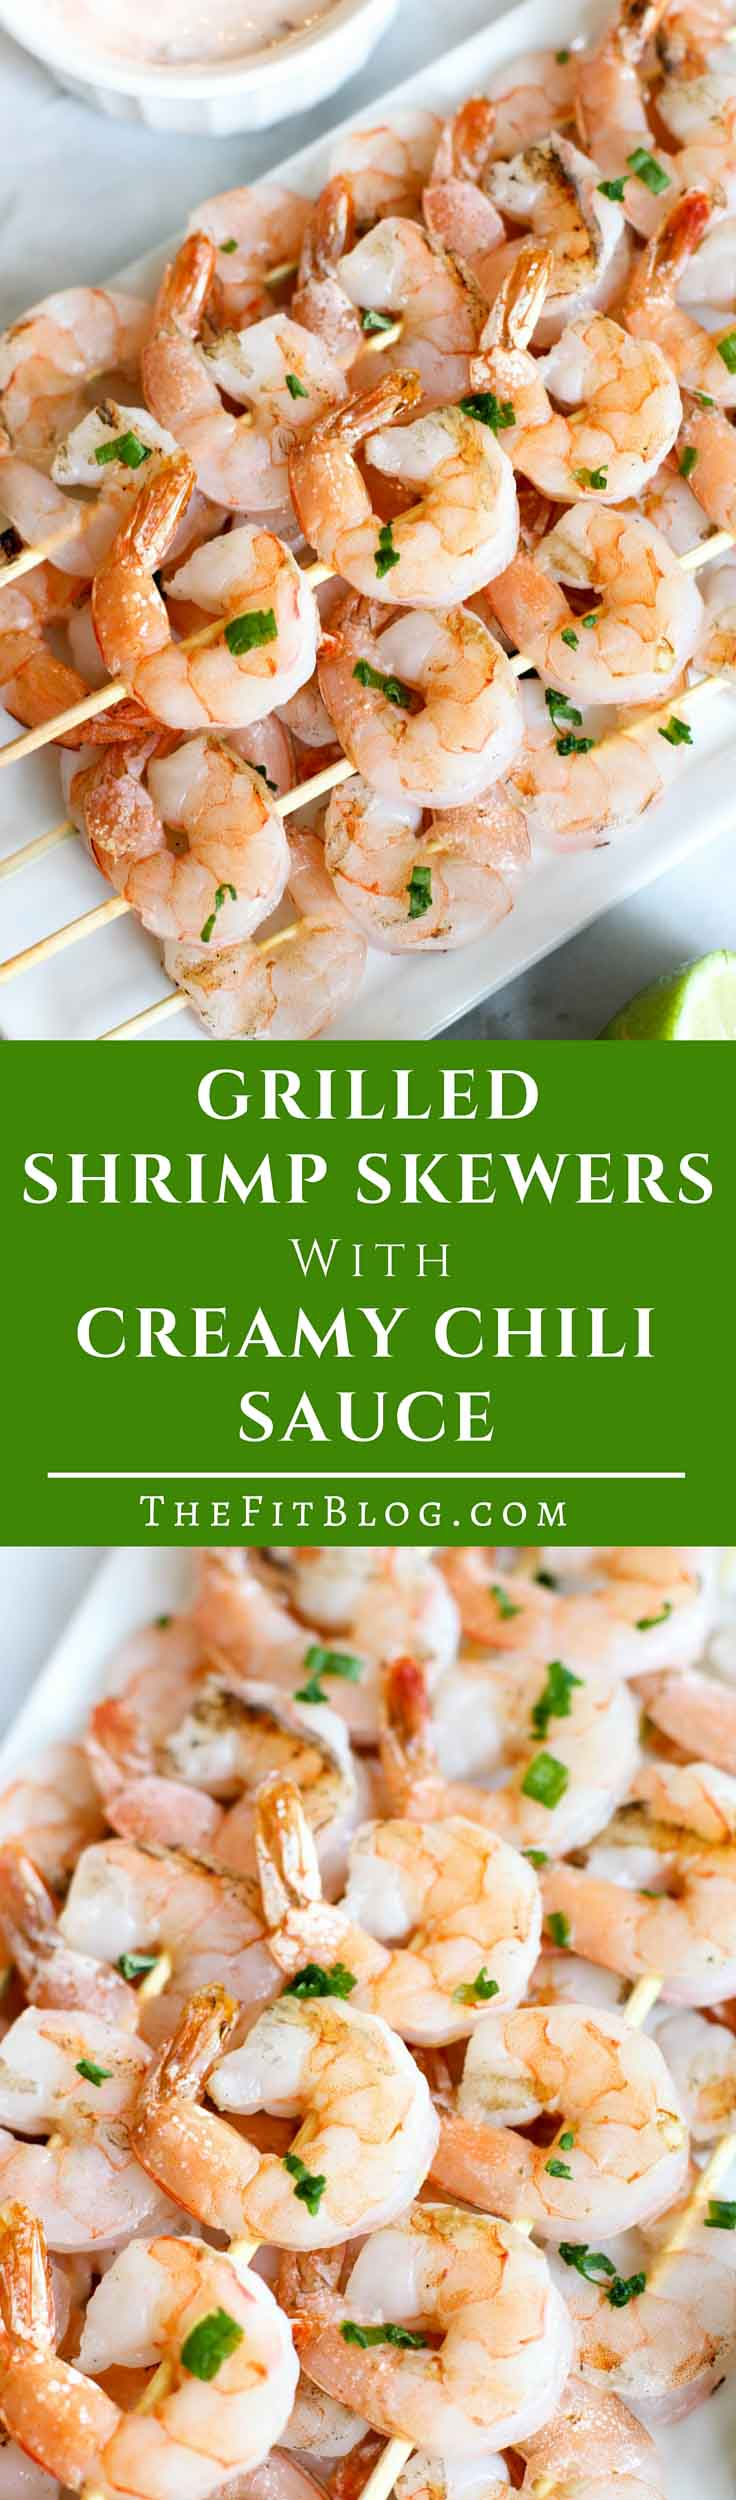 These Grilled Shrimp Skewers with a Creamy Chili Sauce is one of the easiest, healthiest, and tastiest recipes to make on the grill! (high protein, low carb, sugar free, gluten free, diabetes friendly, Paleo)